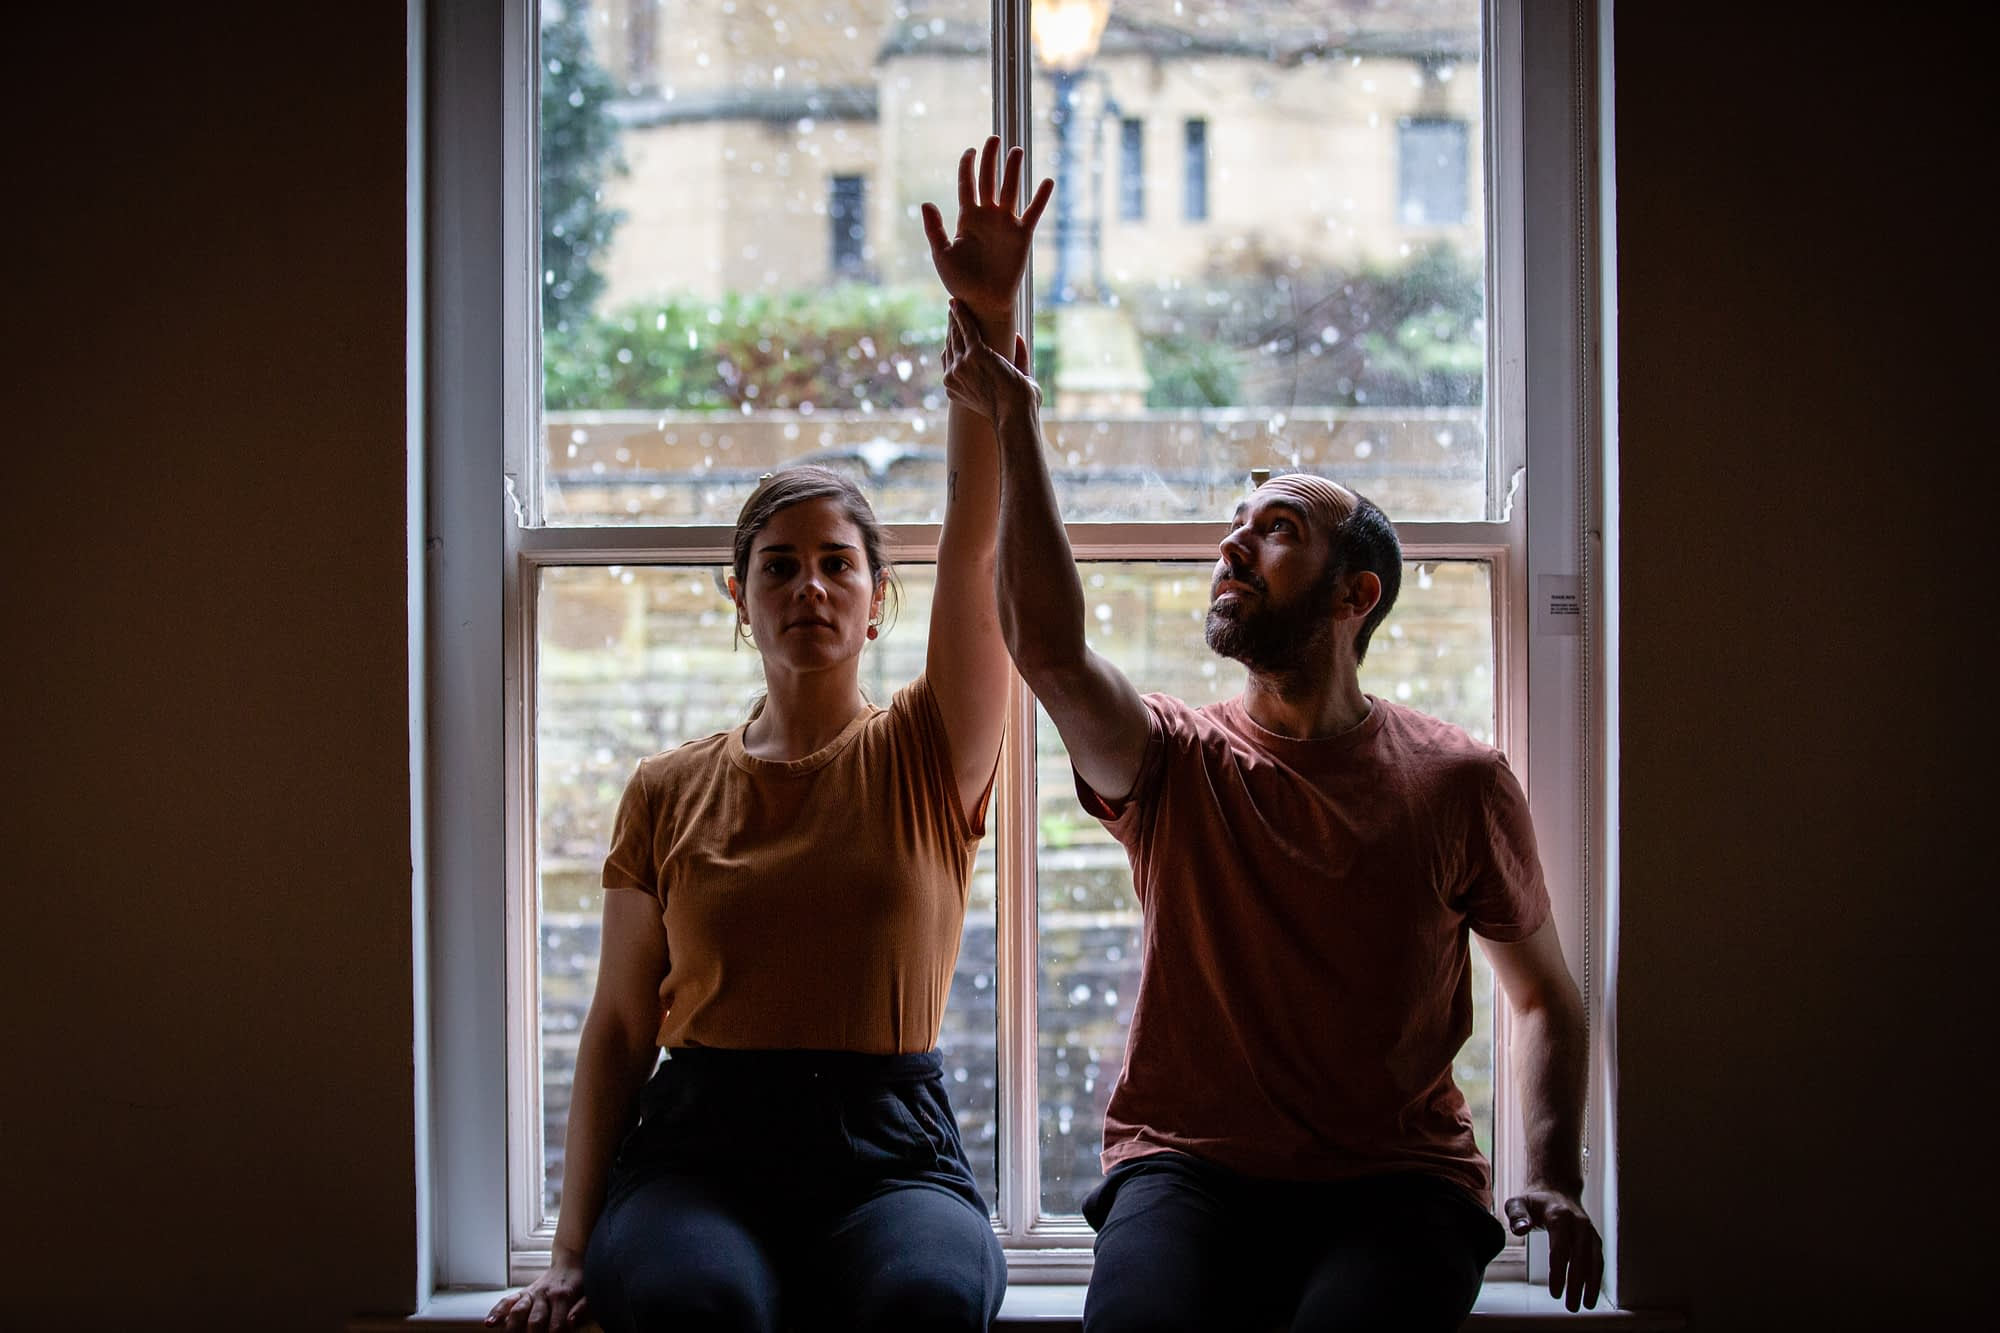 A man and a woman sit side by side in front of a window, each raising a hand above their heads to meet in the middle.